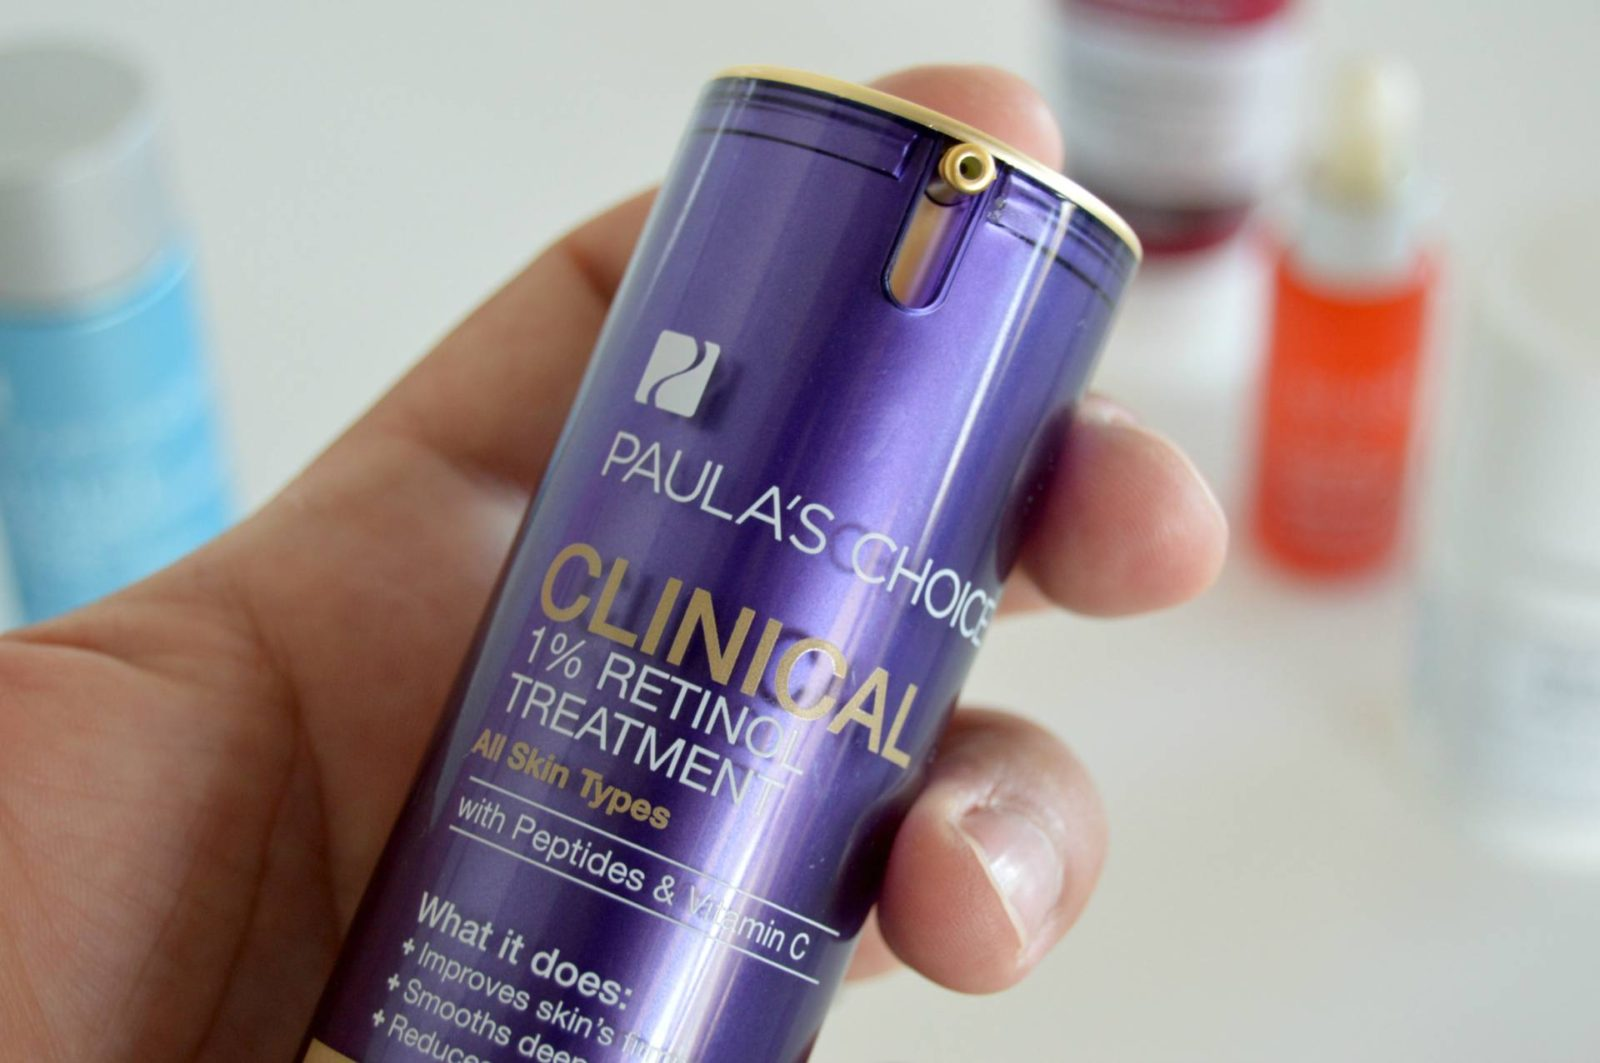 Survey Says… – Paula's Choice Clinical 1% Retinol Treatment